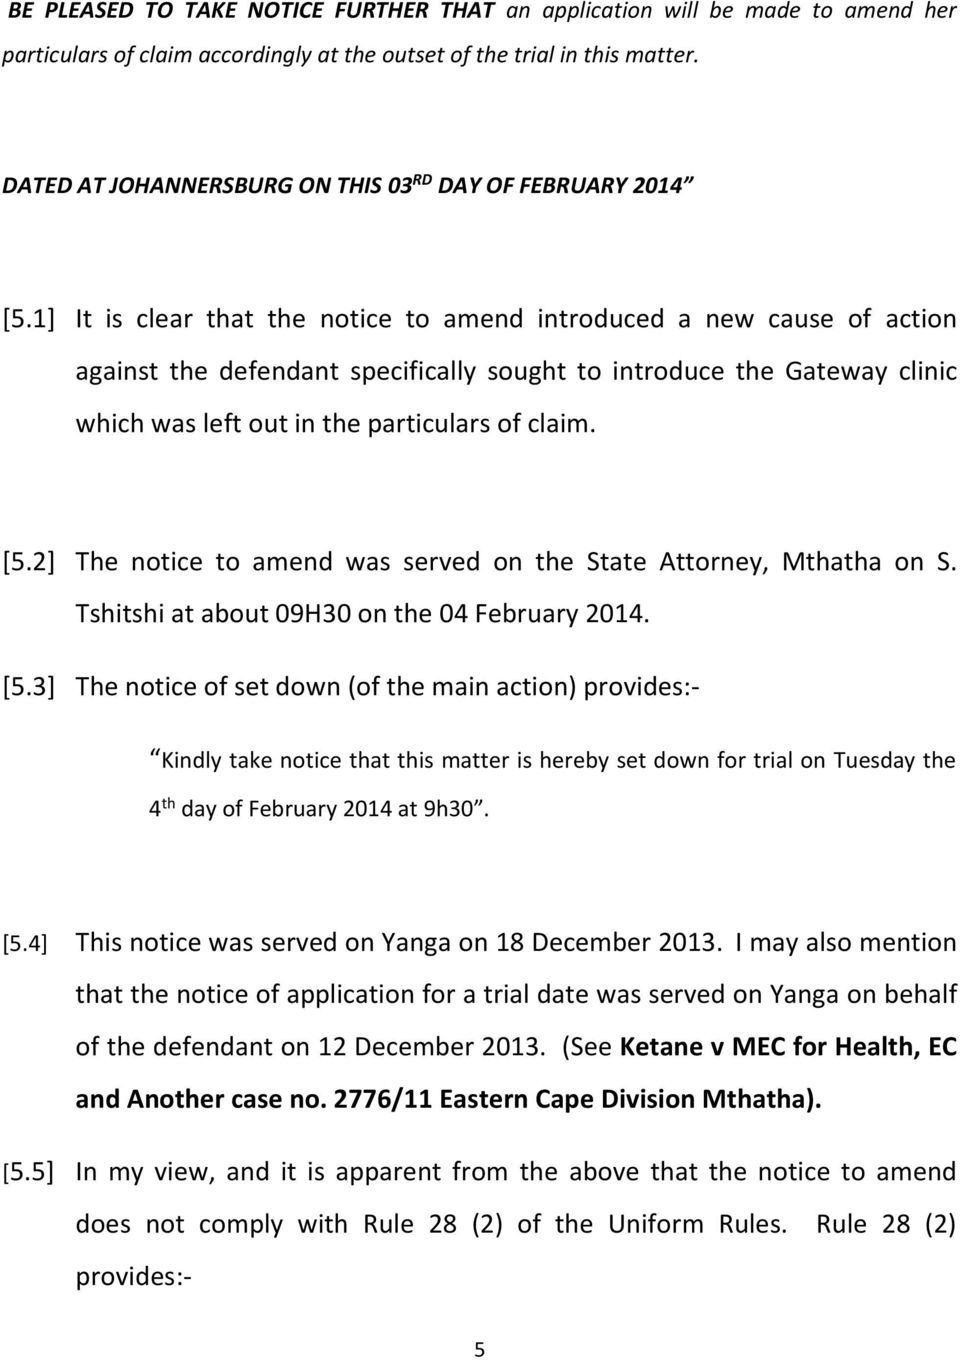 1] It is clear that the notice to amend introduced a new cause of action against the defendant specifically sought to introduce the Gateway clinic which was left out in the particulars of claim. [5.